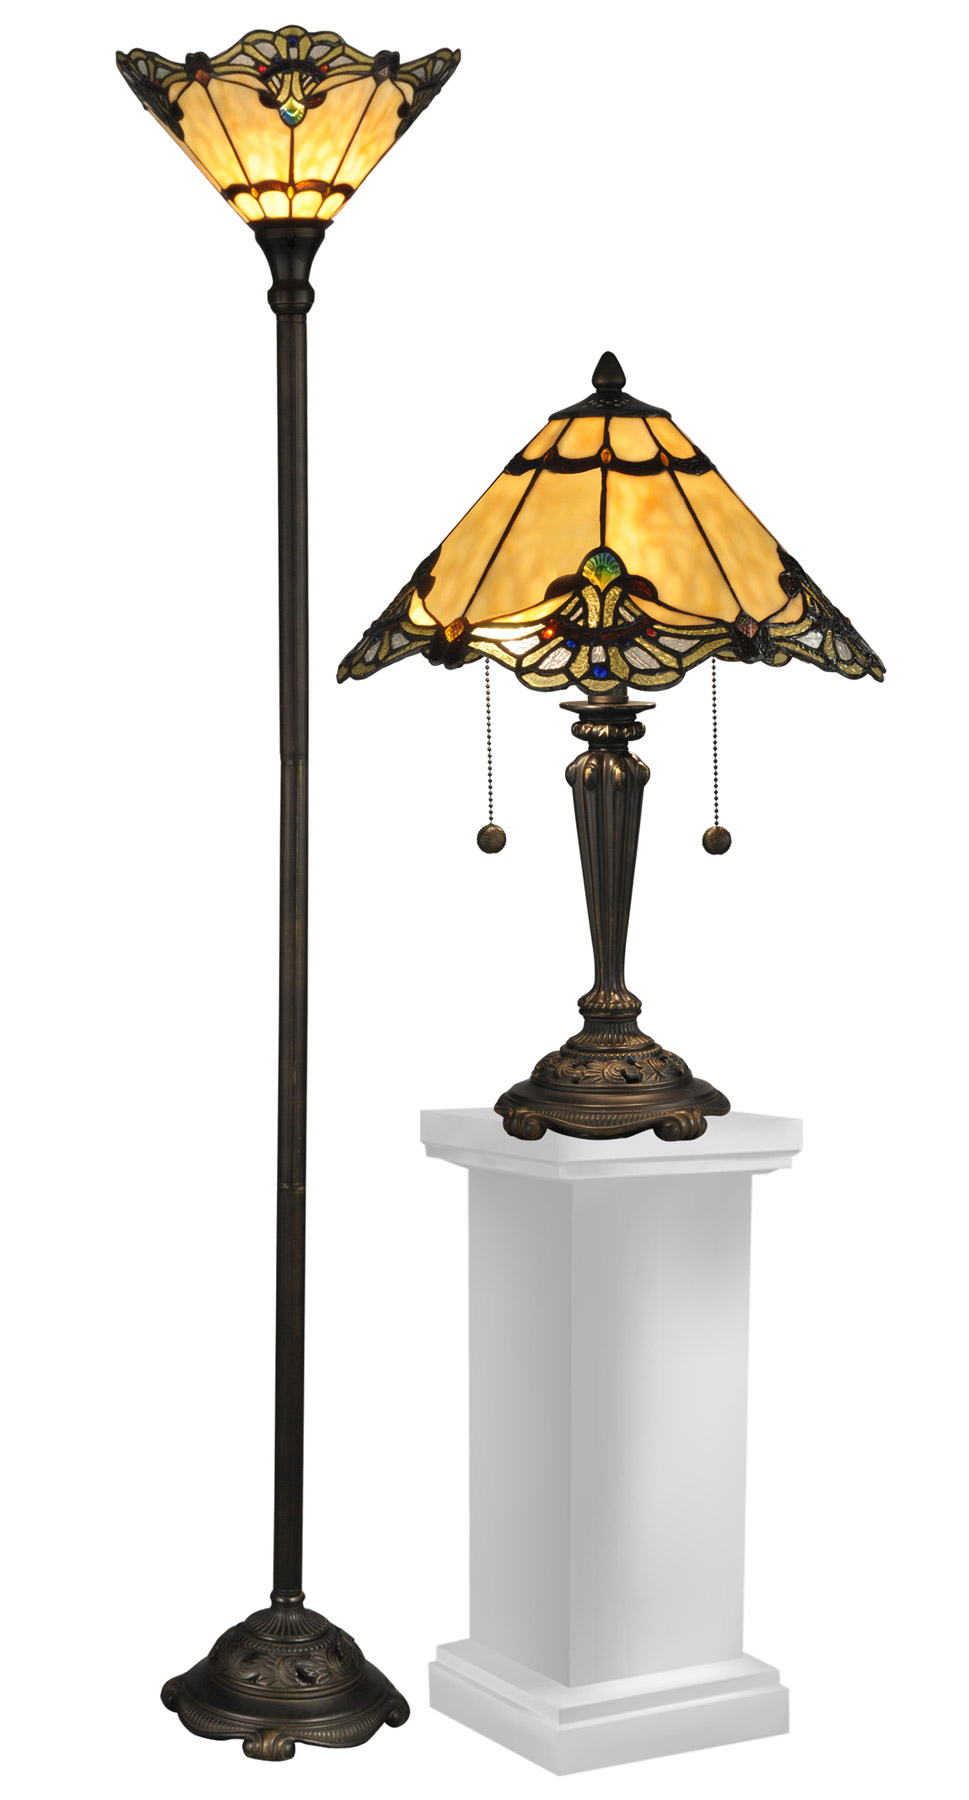 Dale Tiffany Tc12179 Tiffany Brena Table And Torchiere